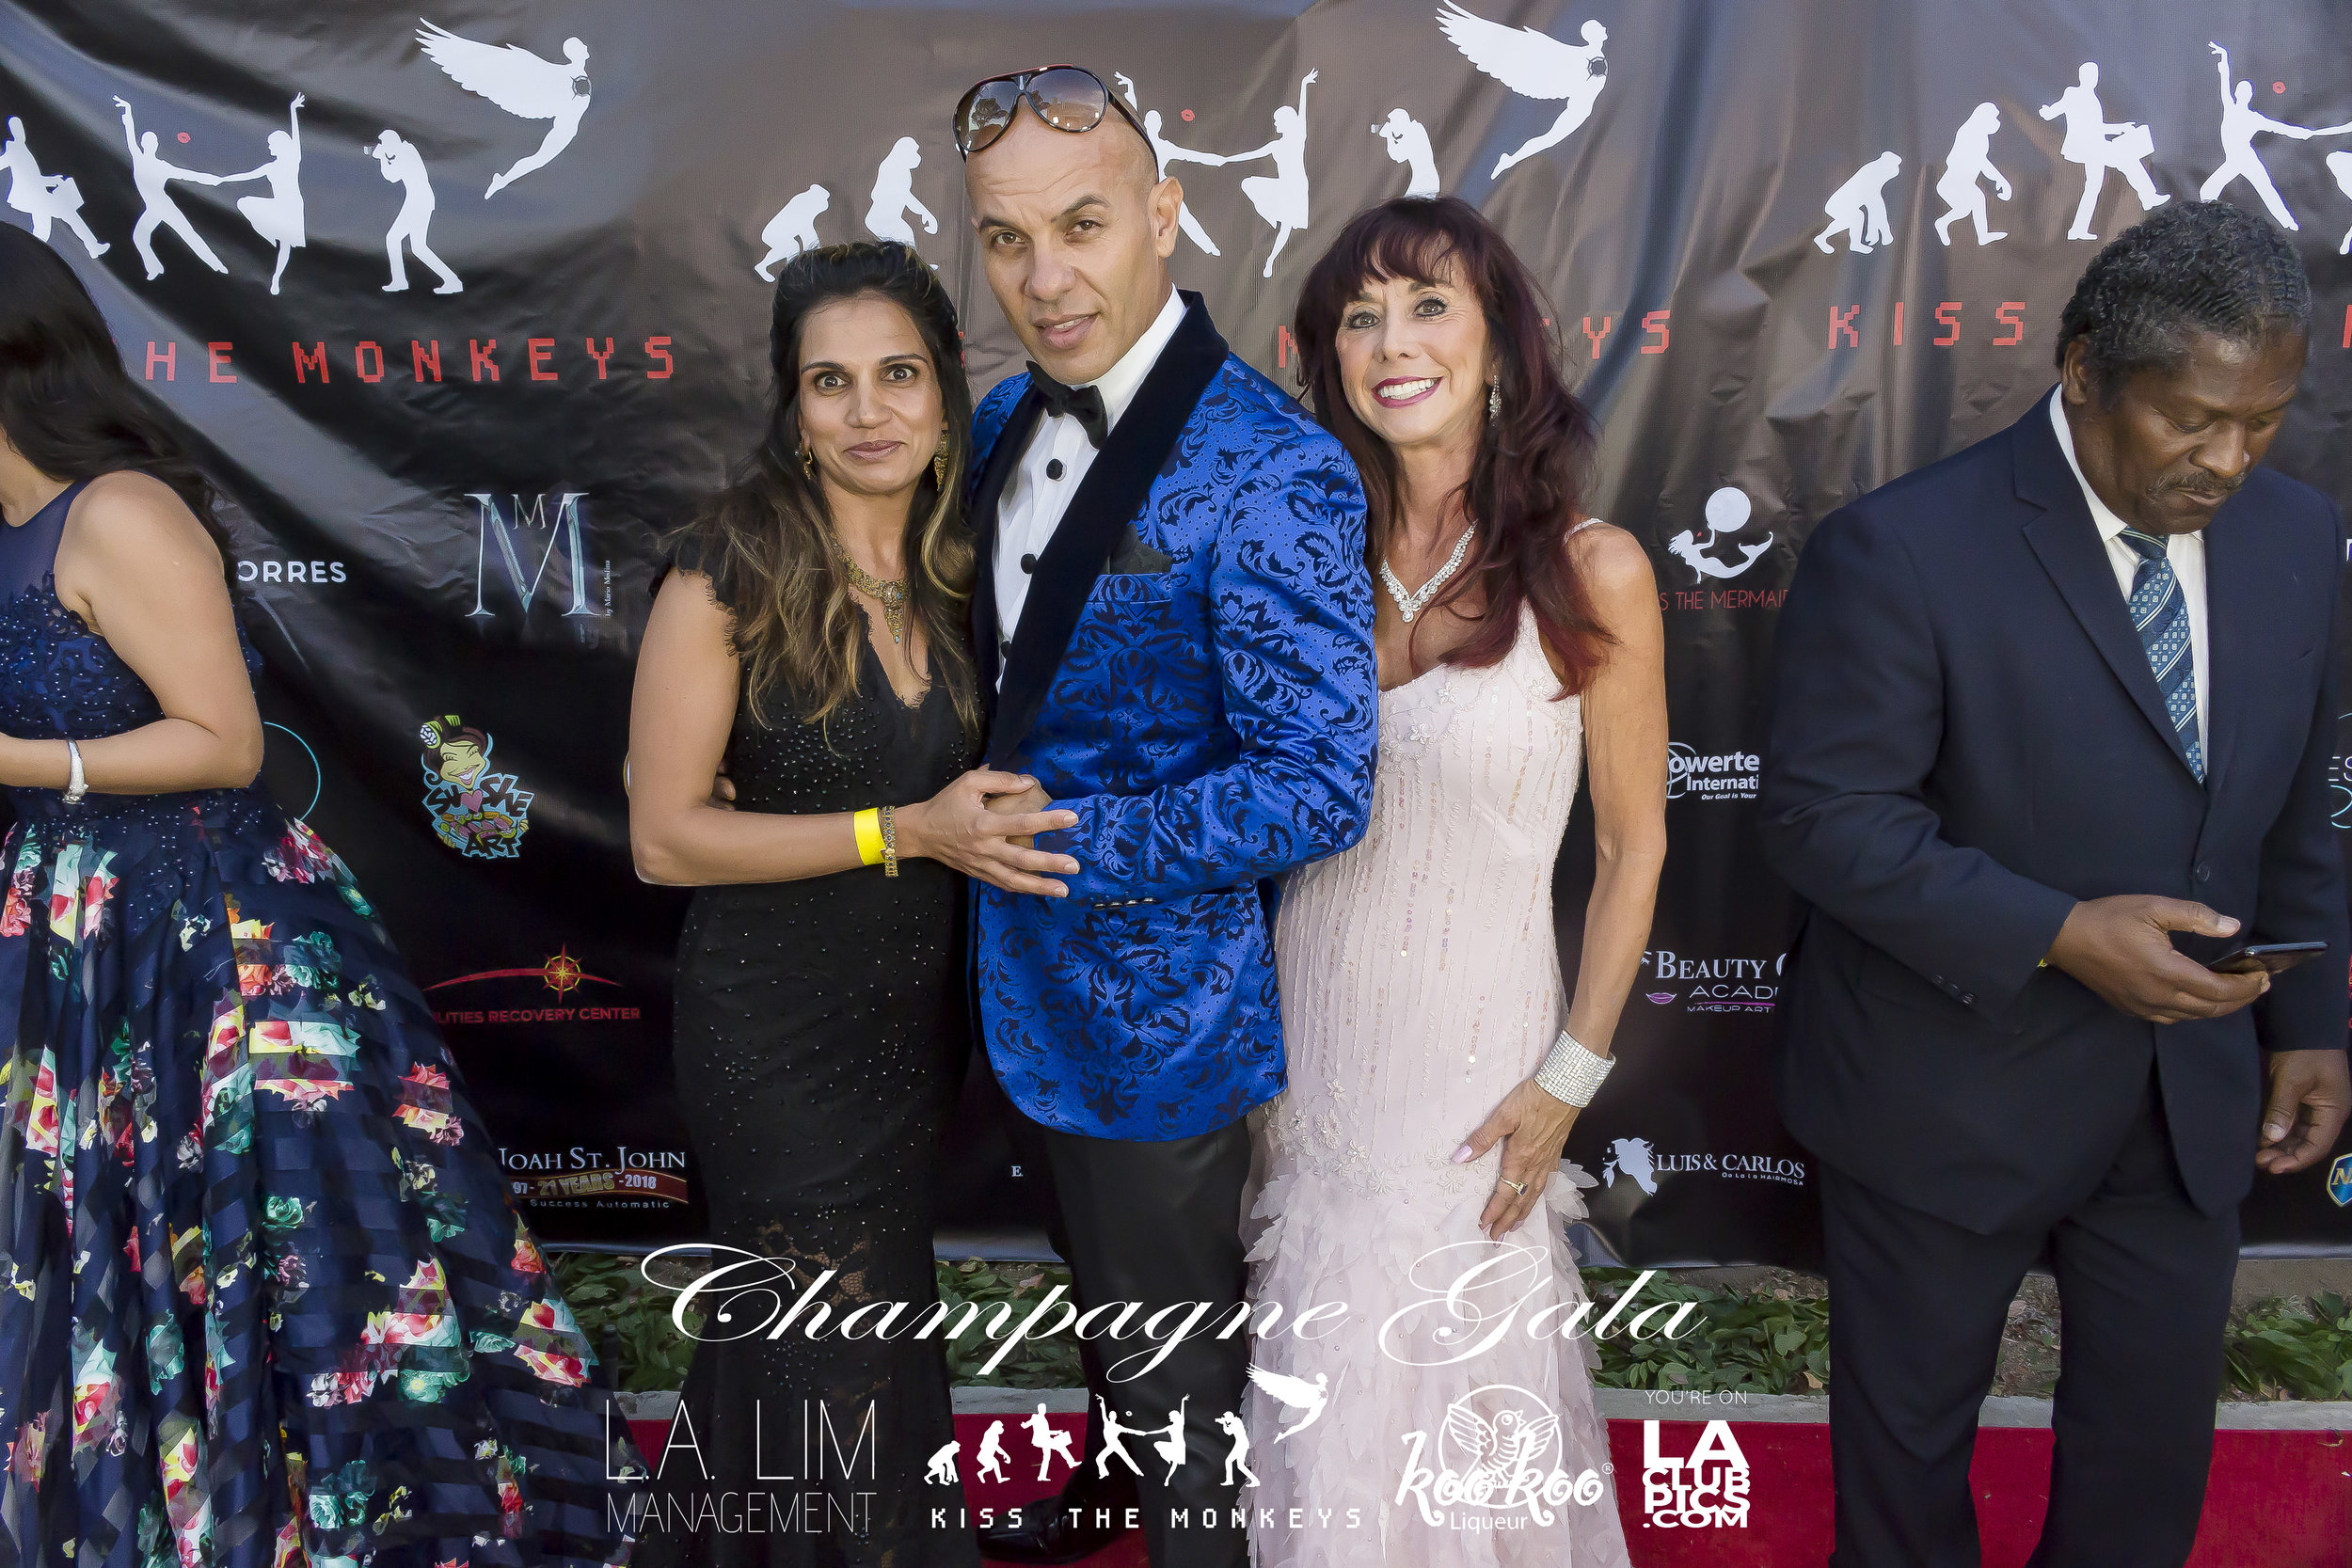 Kiss The Monkeys - Champagne Gala - 07-21-18_140.jpg